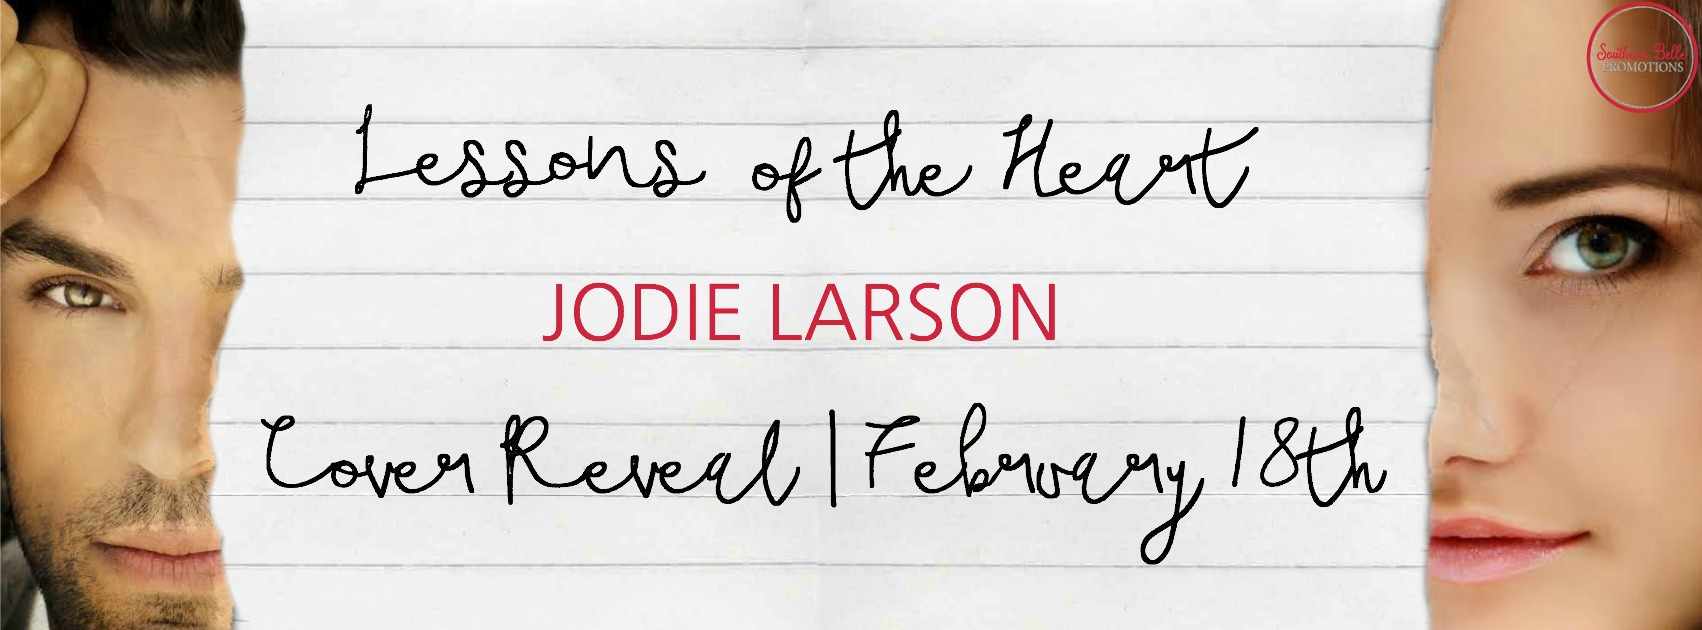 lessons-of-the-heart-banner